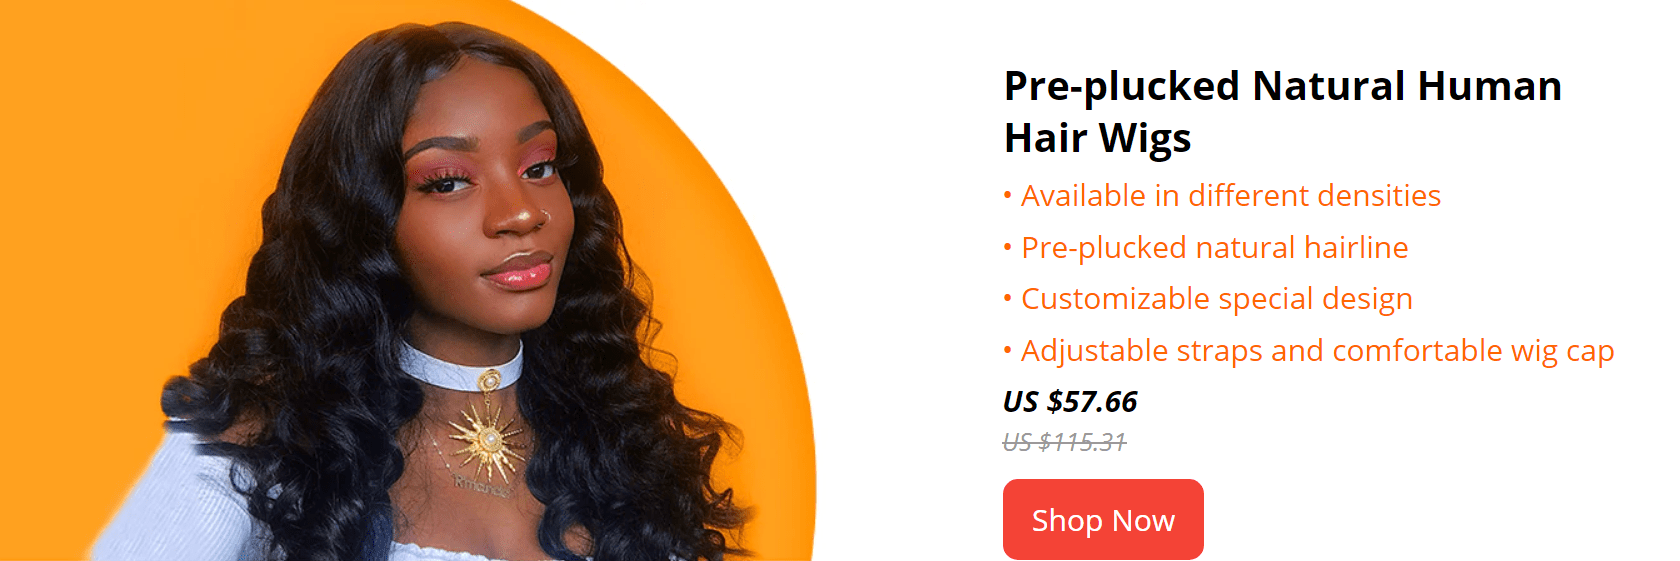 Lace Front Human Hair Wigs Pre Plucked 130% 150% 180% 250% Density Brazilian Body Wave Wigs For Women Remy Alipearl Hair Lace Wigs Hair Extensions & Wigs